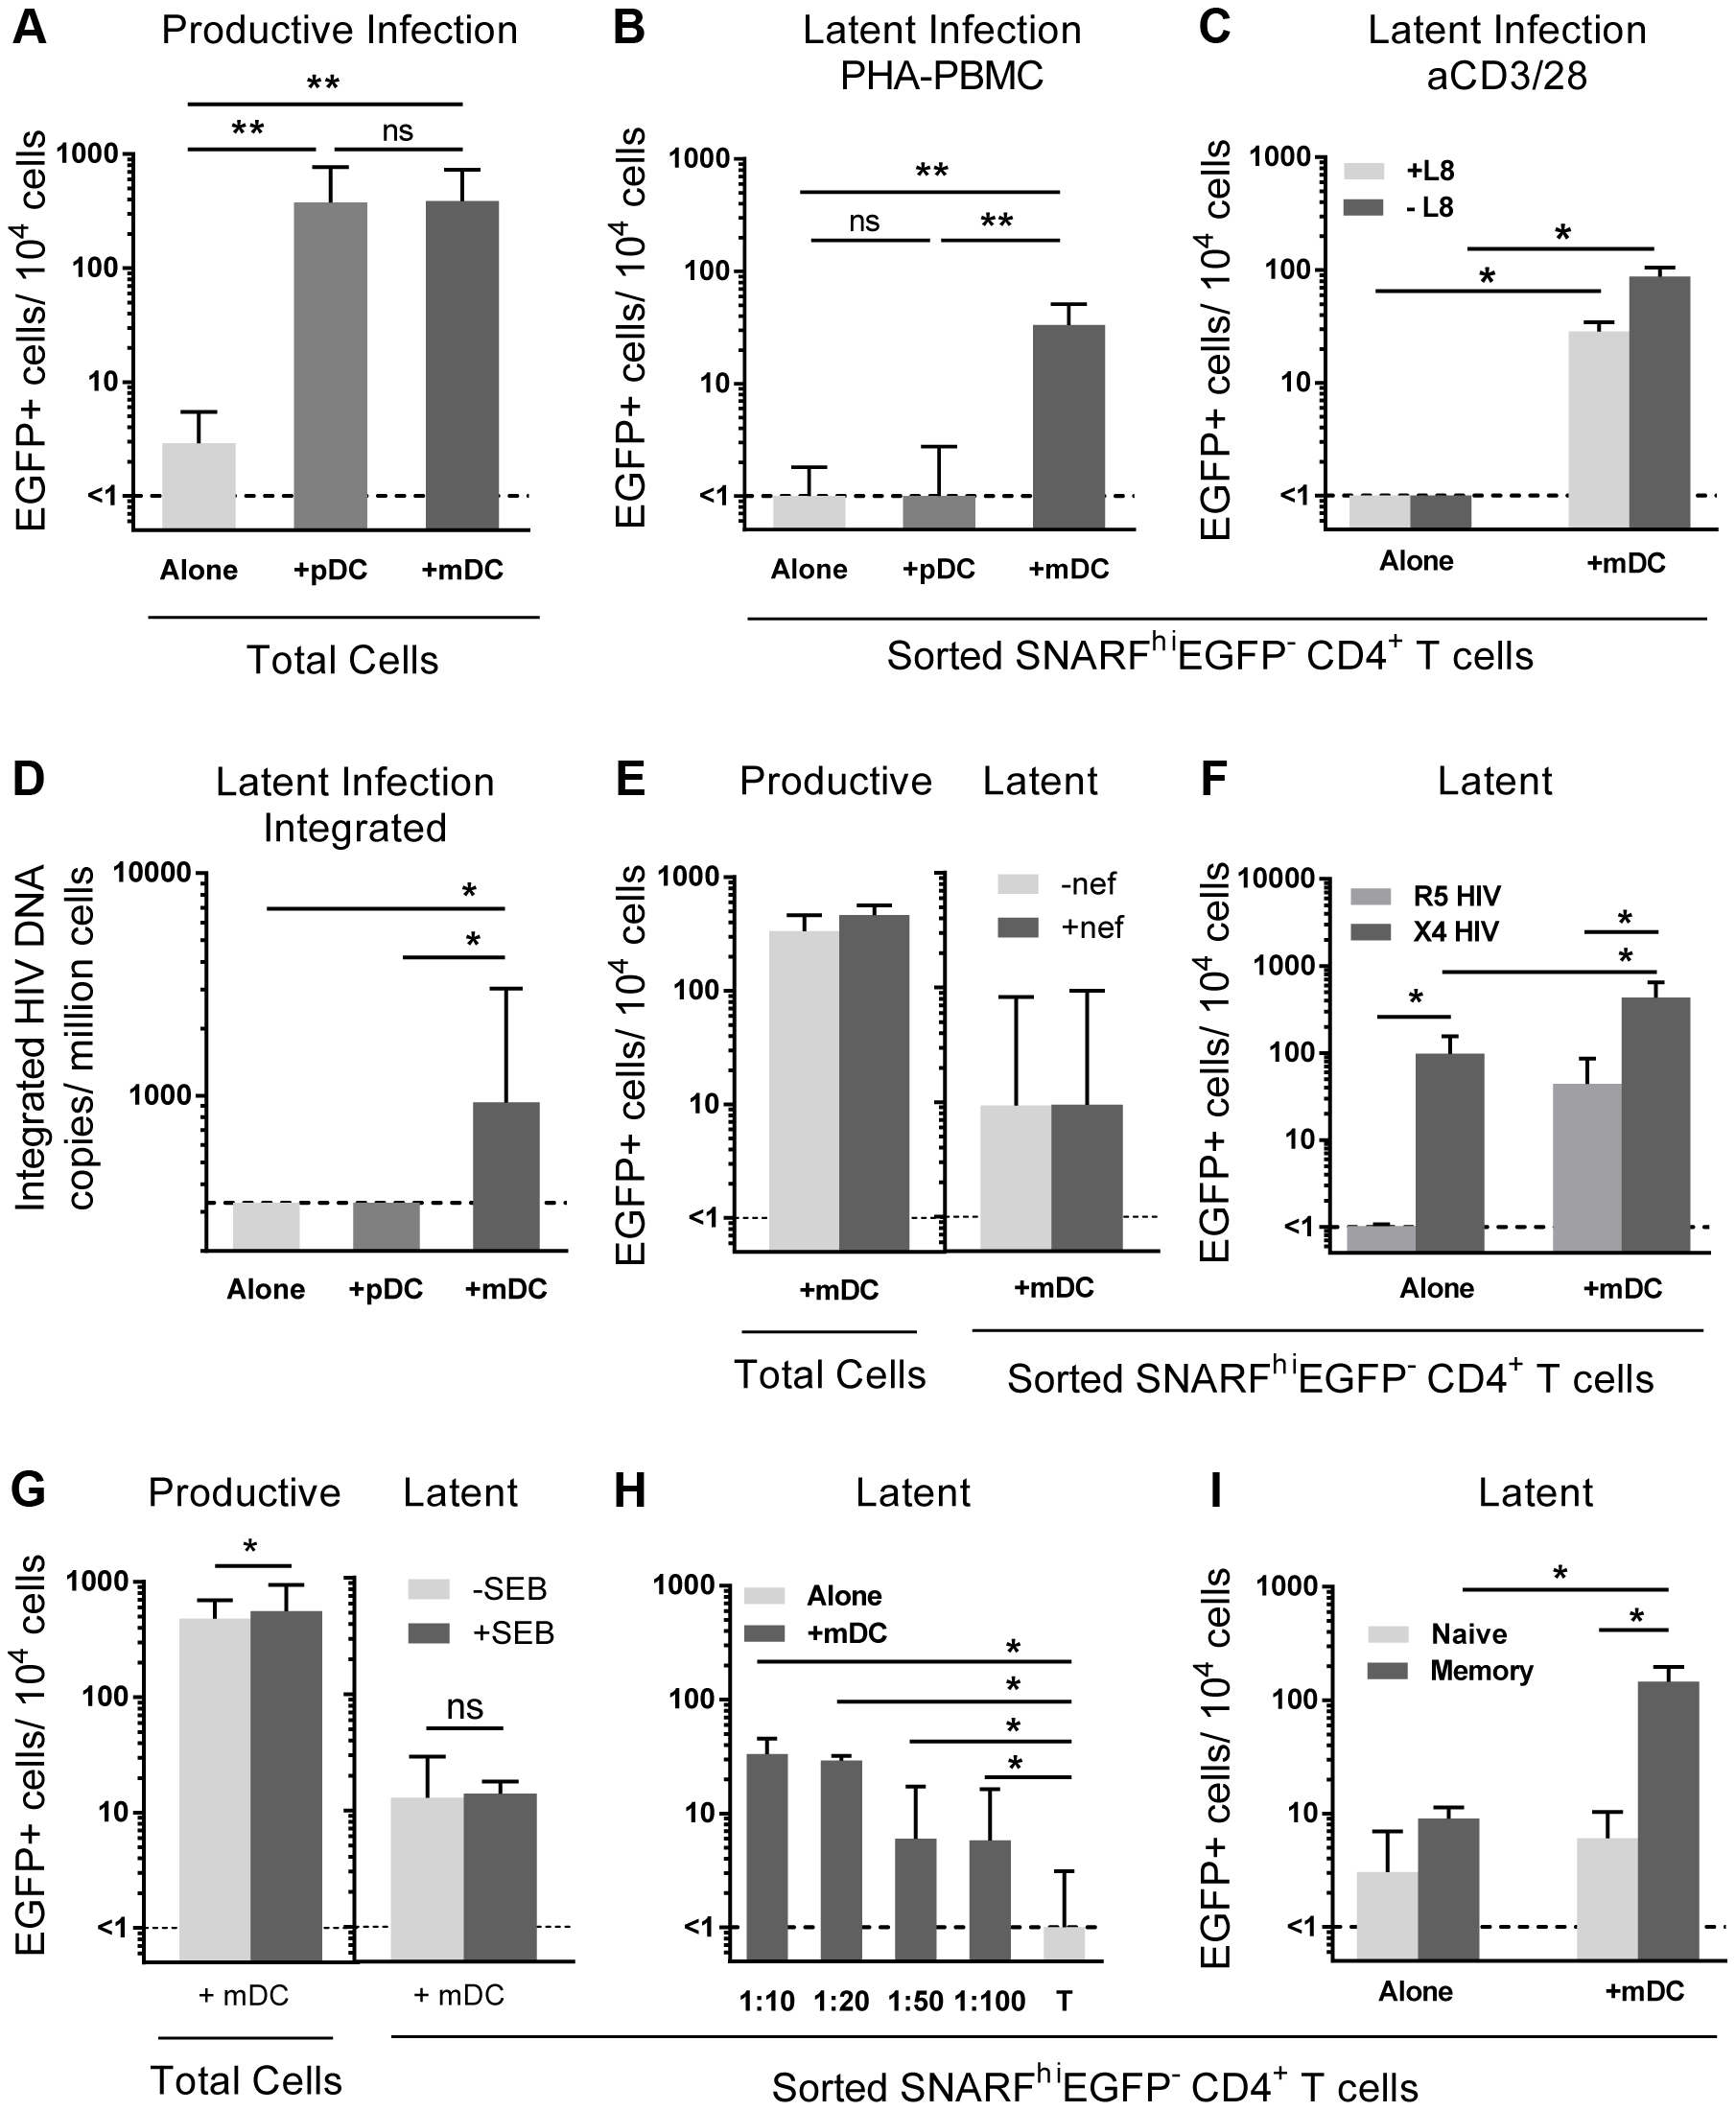 Myeloid DC induce post-integration latency in non-proliferating memory CD4<sup>+</sup> T cells.